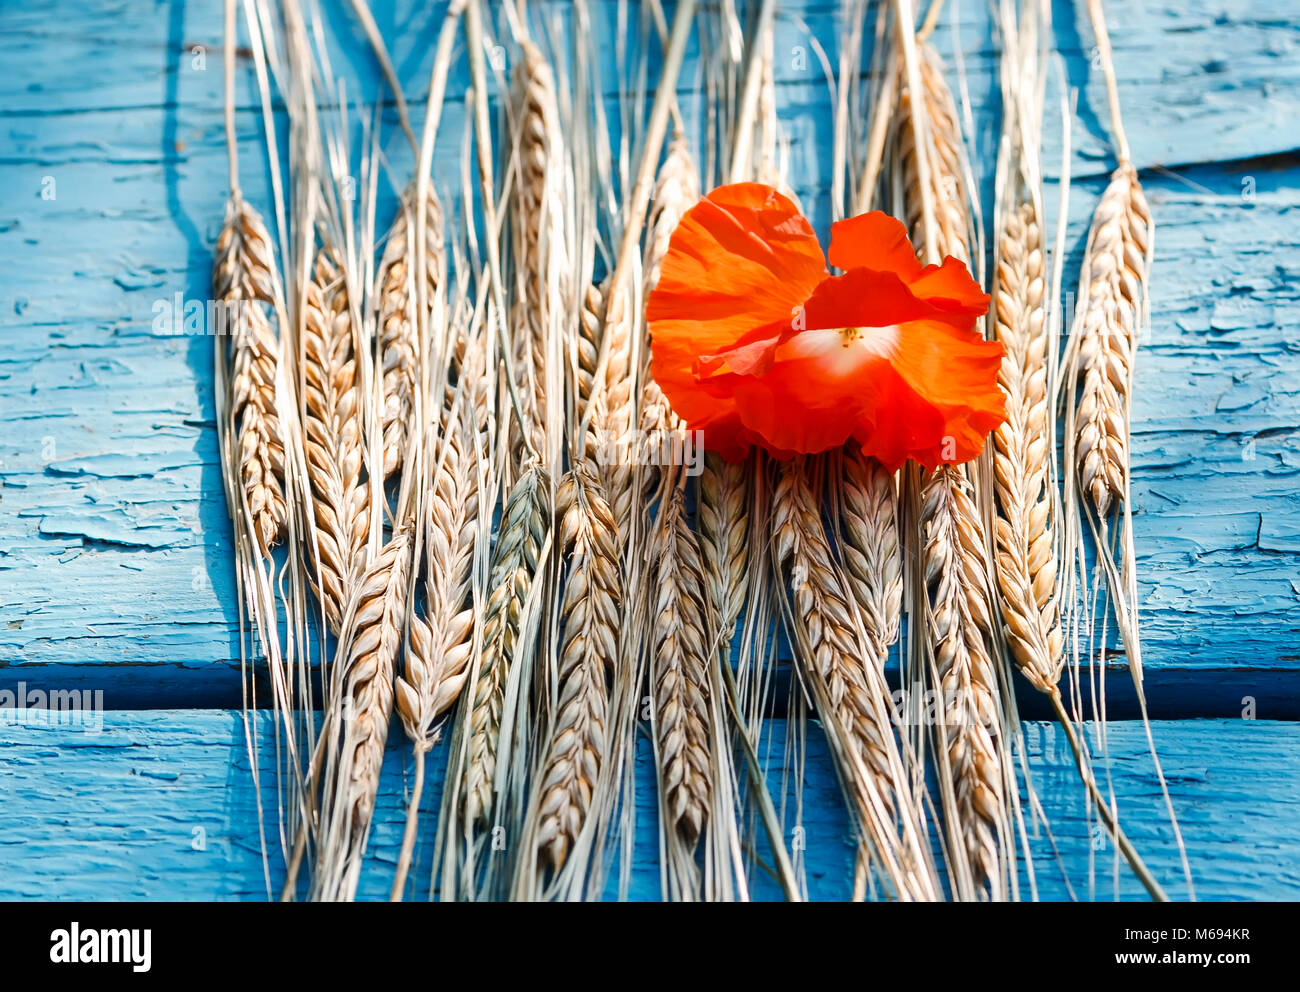 a still life of ripe Golden ears of corn and a bright red poppy on blue table - Stock Image